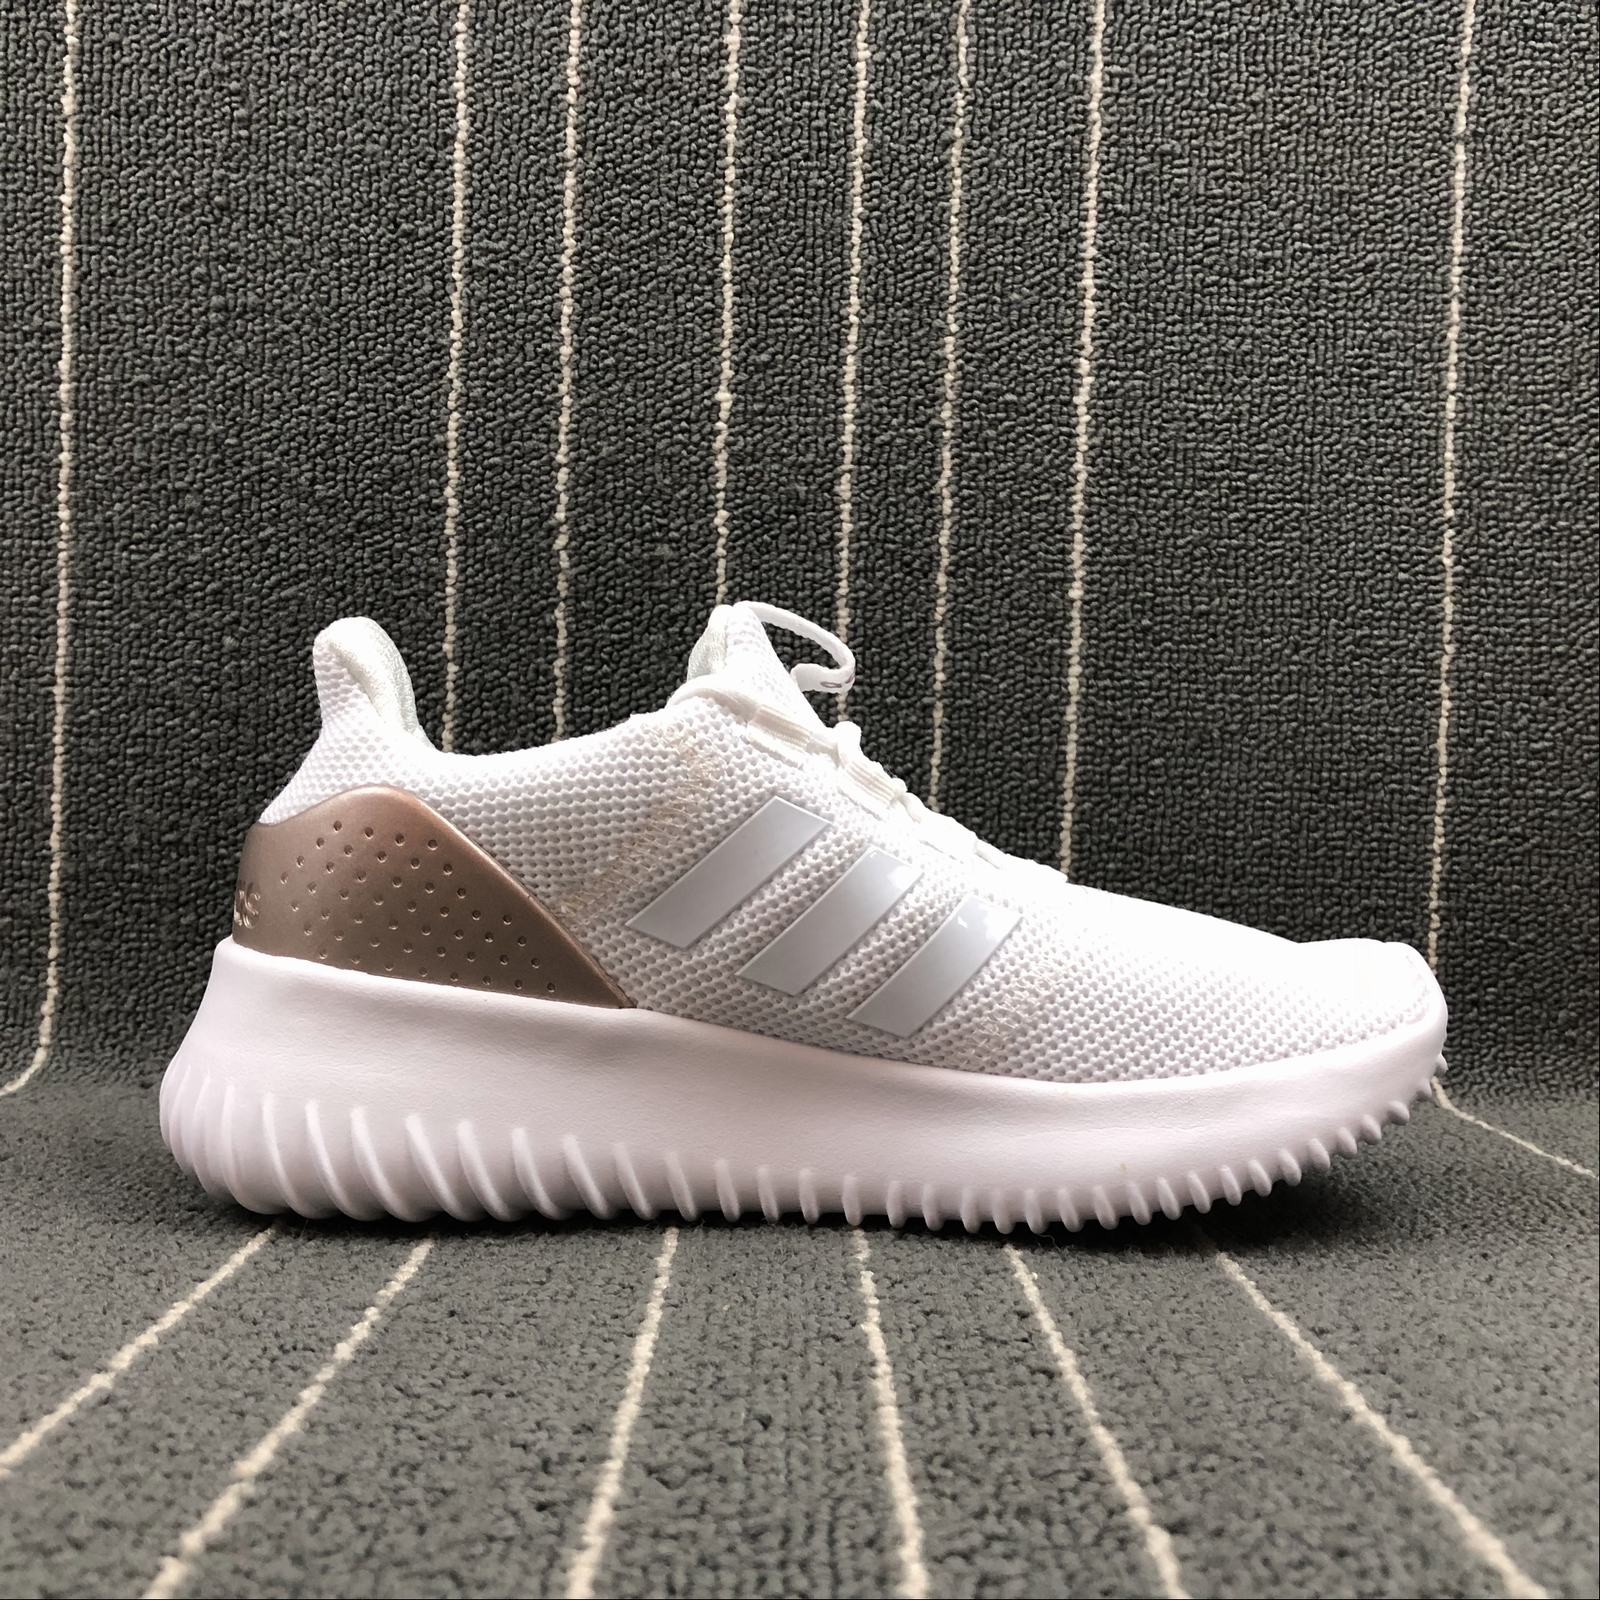 Женские кроссовки Adidas NEO Cloudfoam Ultimate Women White,Gold,White - фото №2